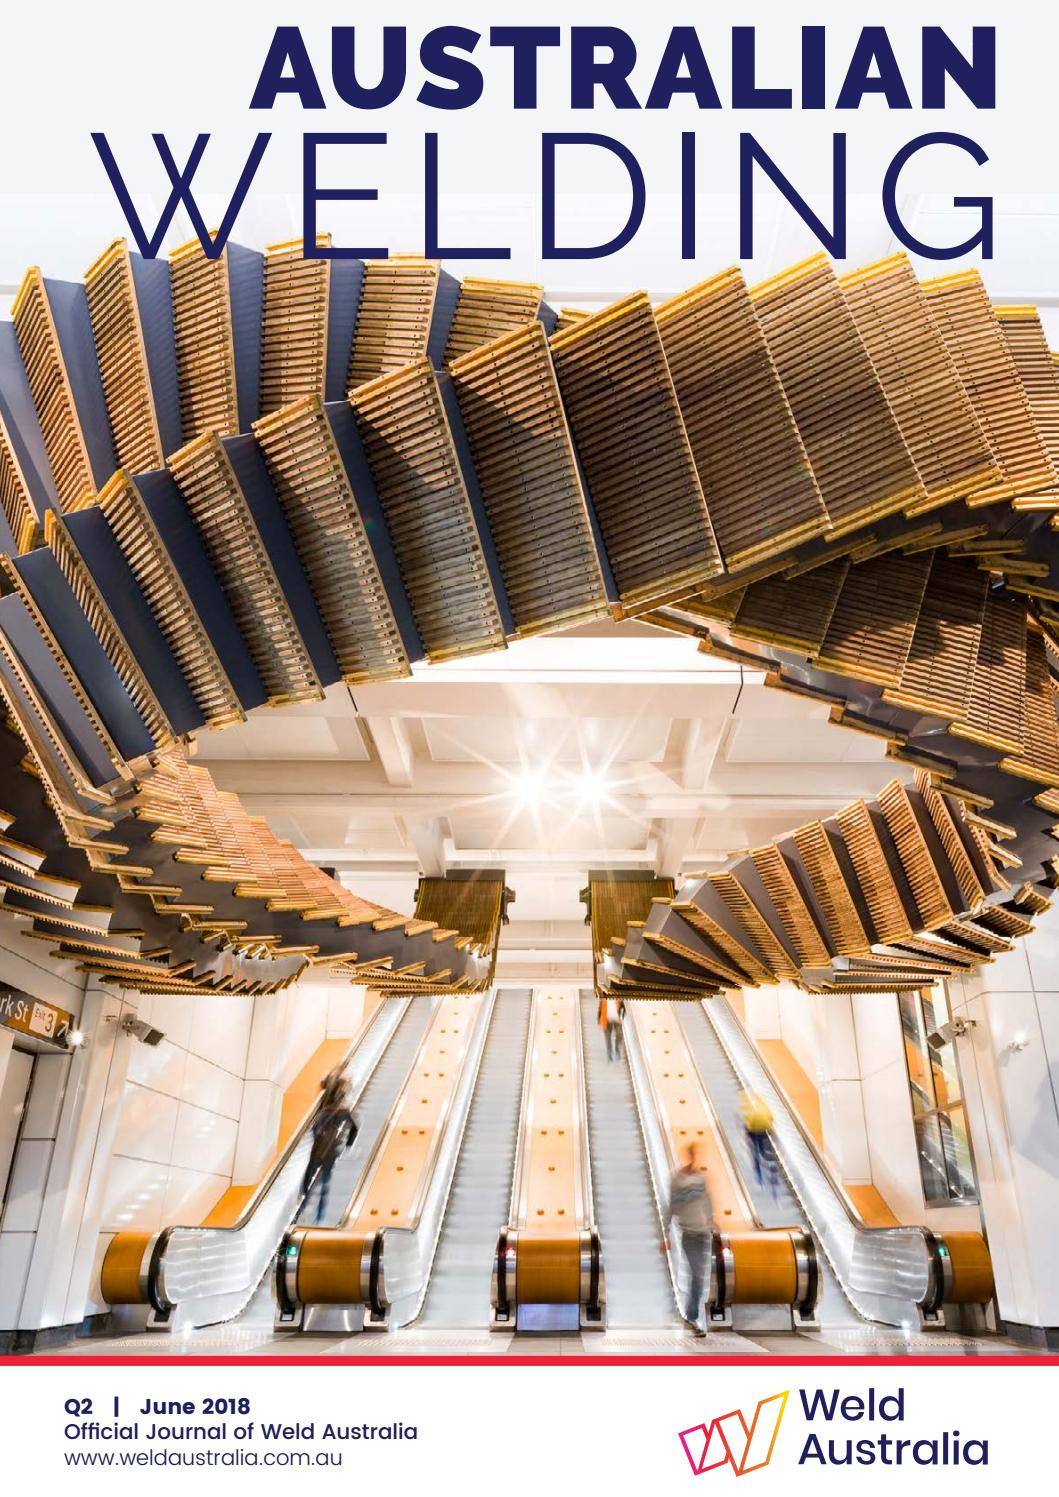 Australian Welding June 2018 (Q2) by Weld Australia - issuu